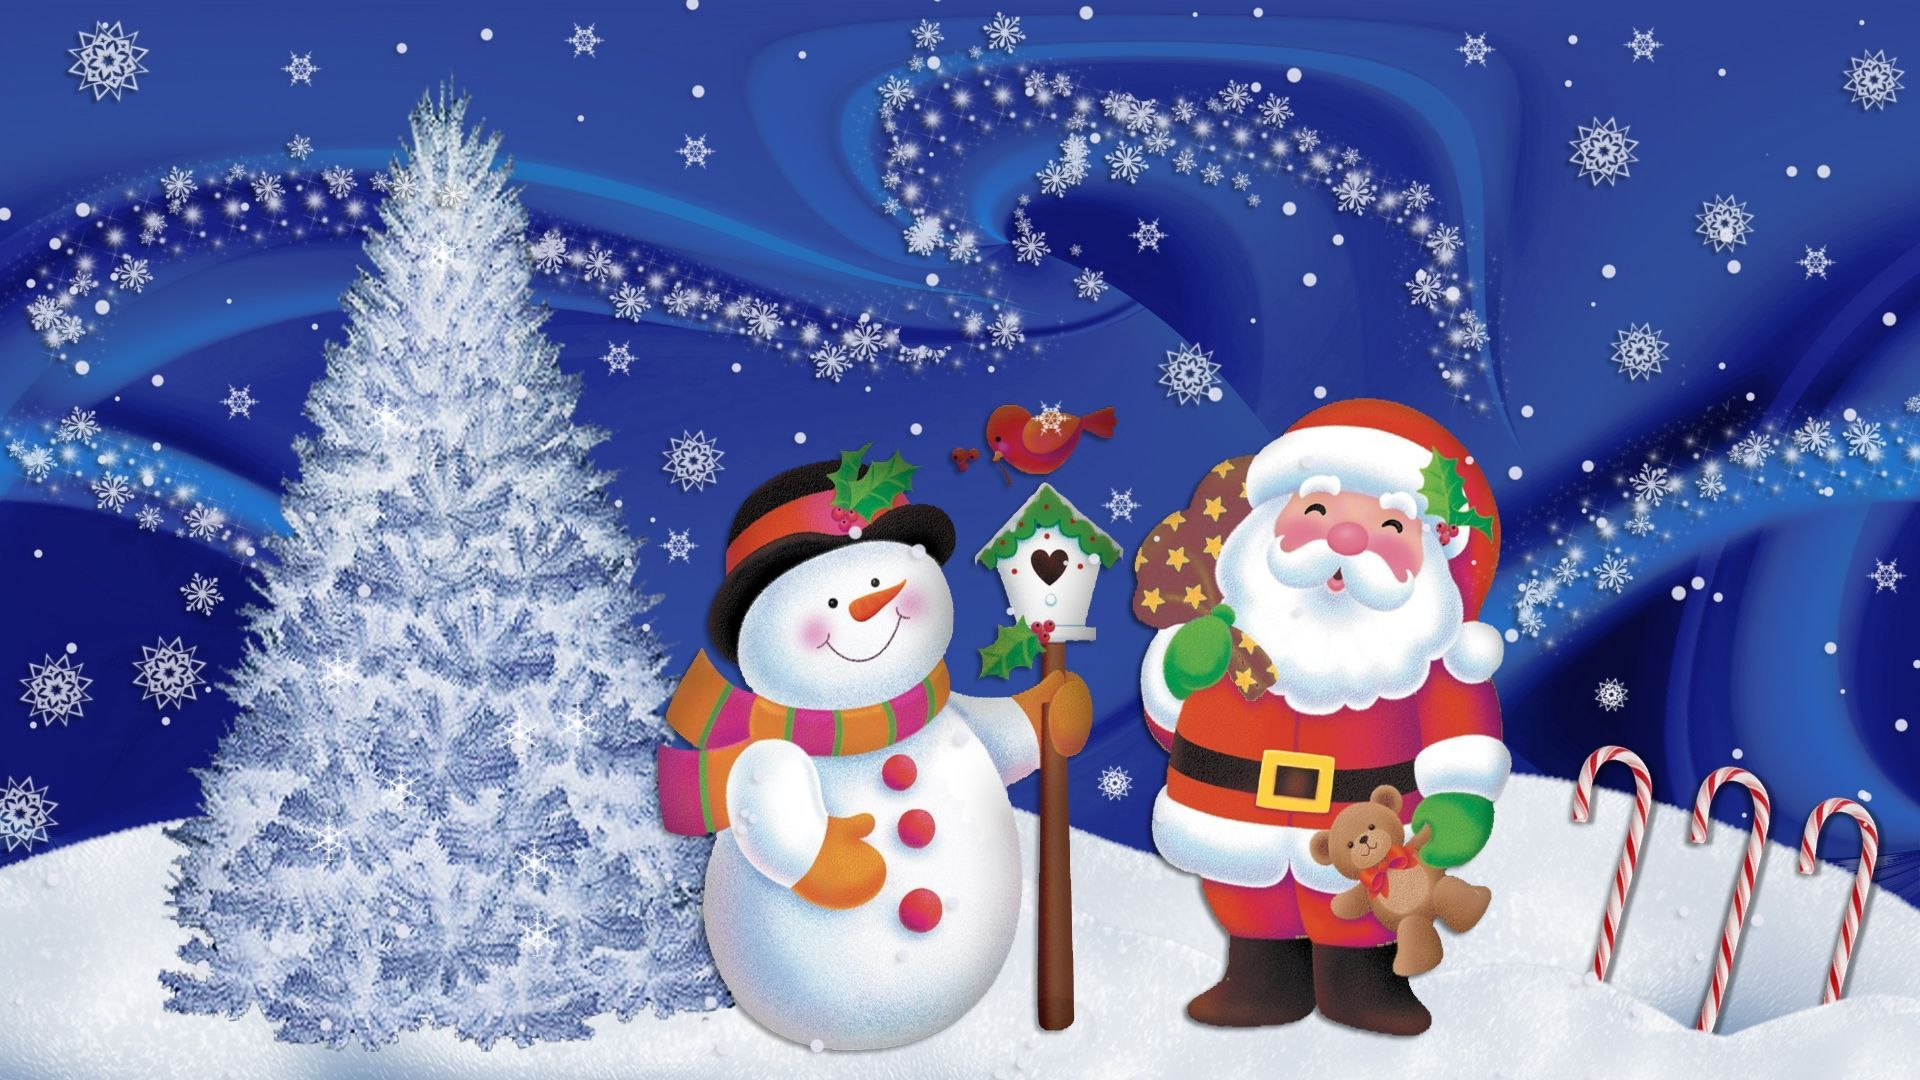 Christmas Pictures Free.Christmas Pc Wallpapers Top Free Christmas Pc Backgrounds